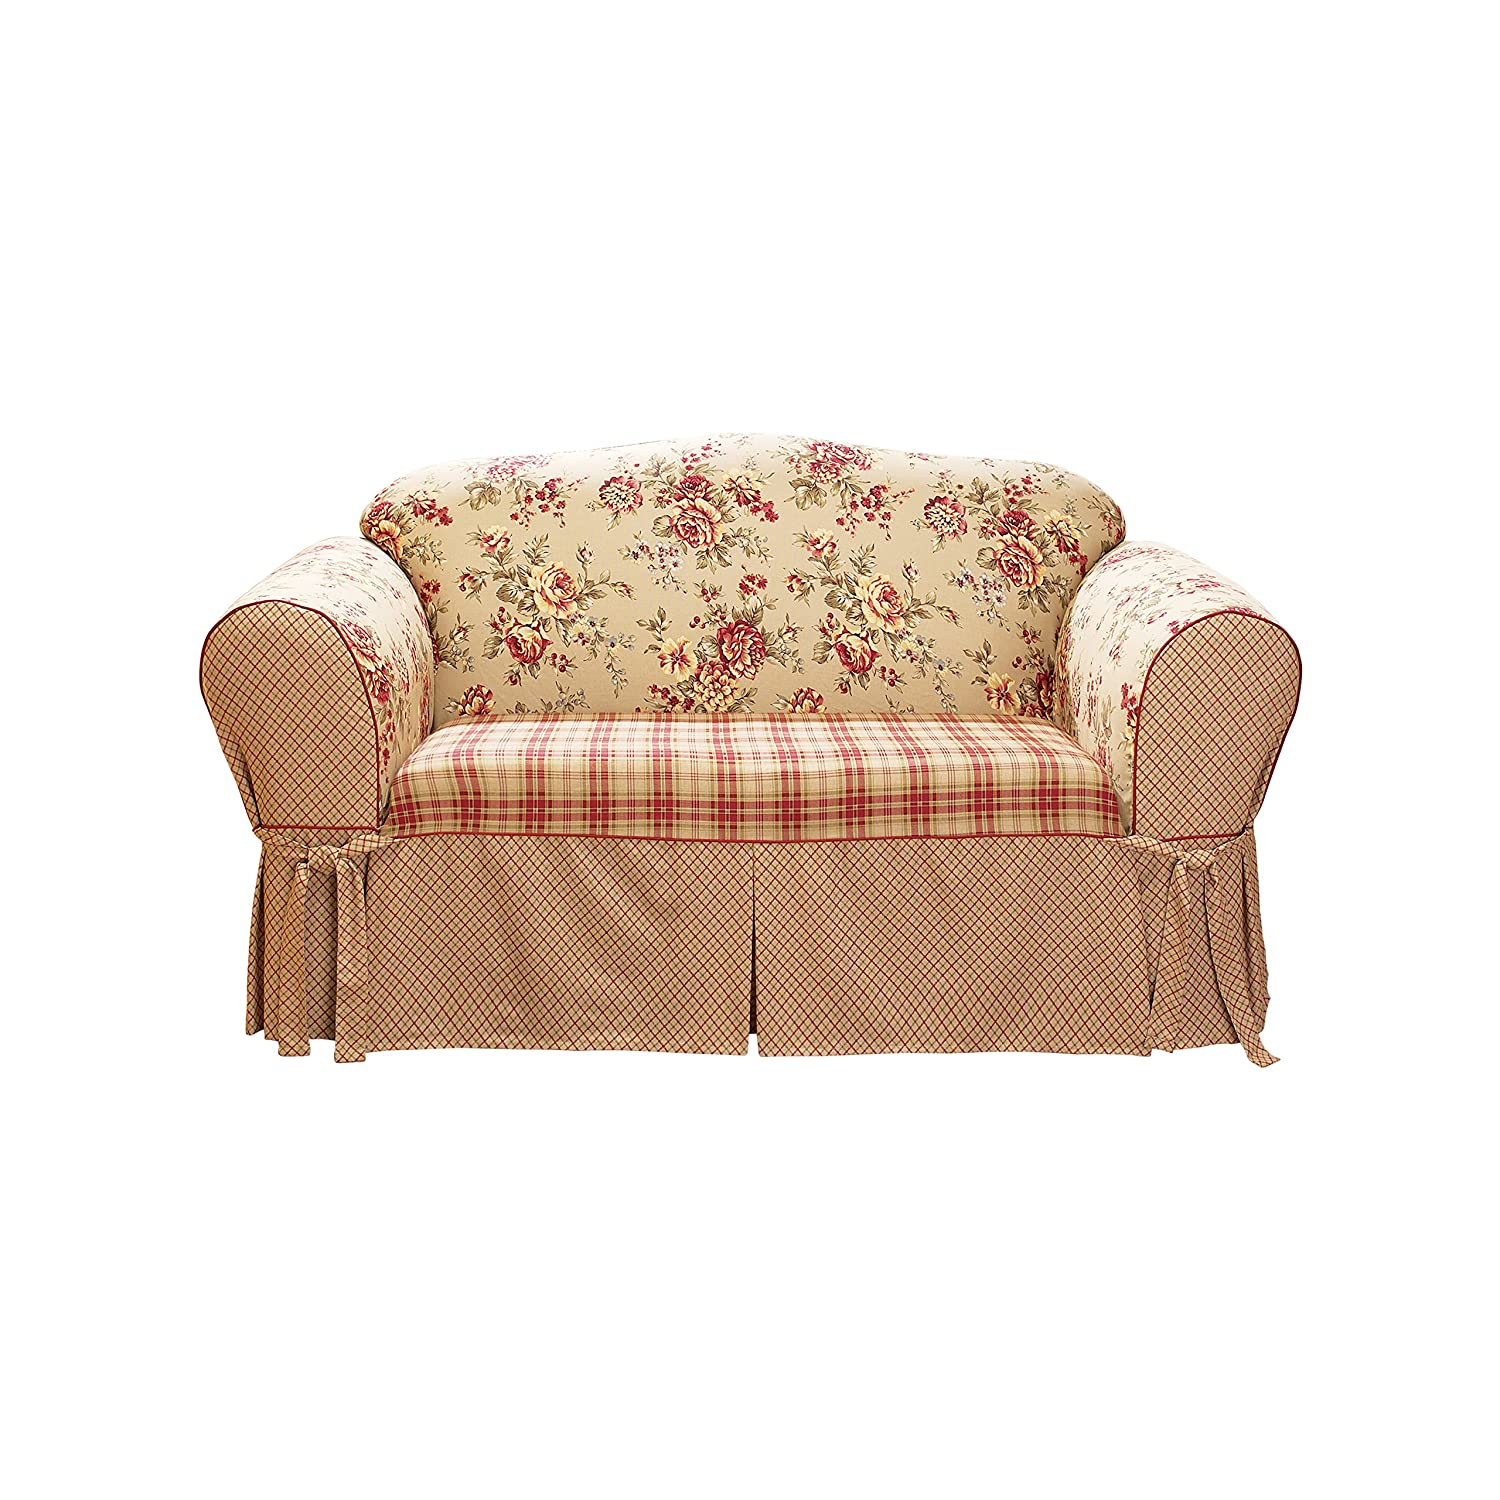 Amazon Sure Fit Lexington Sofa Slipcover Multi SF